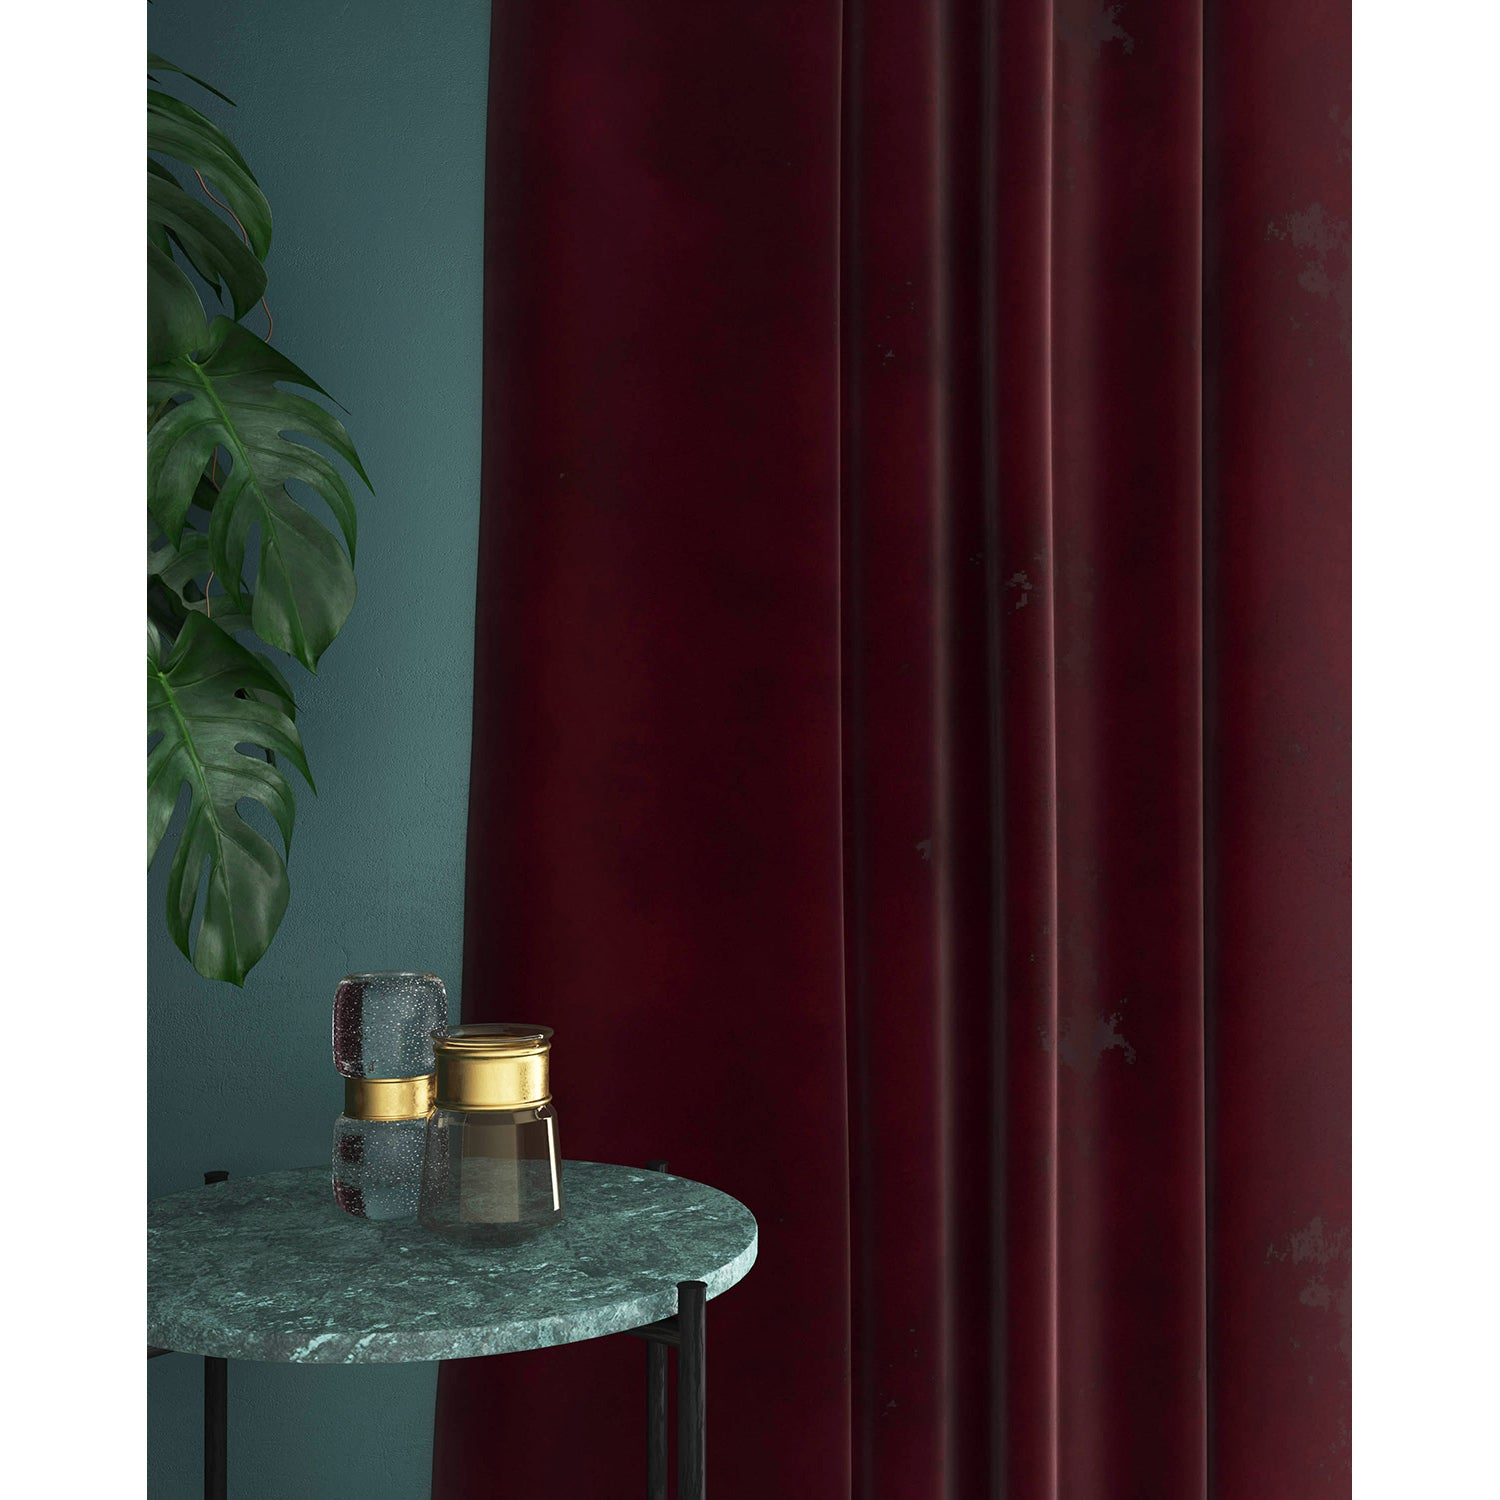 Curtains in a berry red velvet fabric with a stain resistant finish